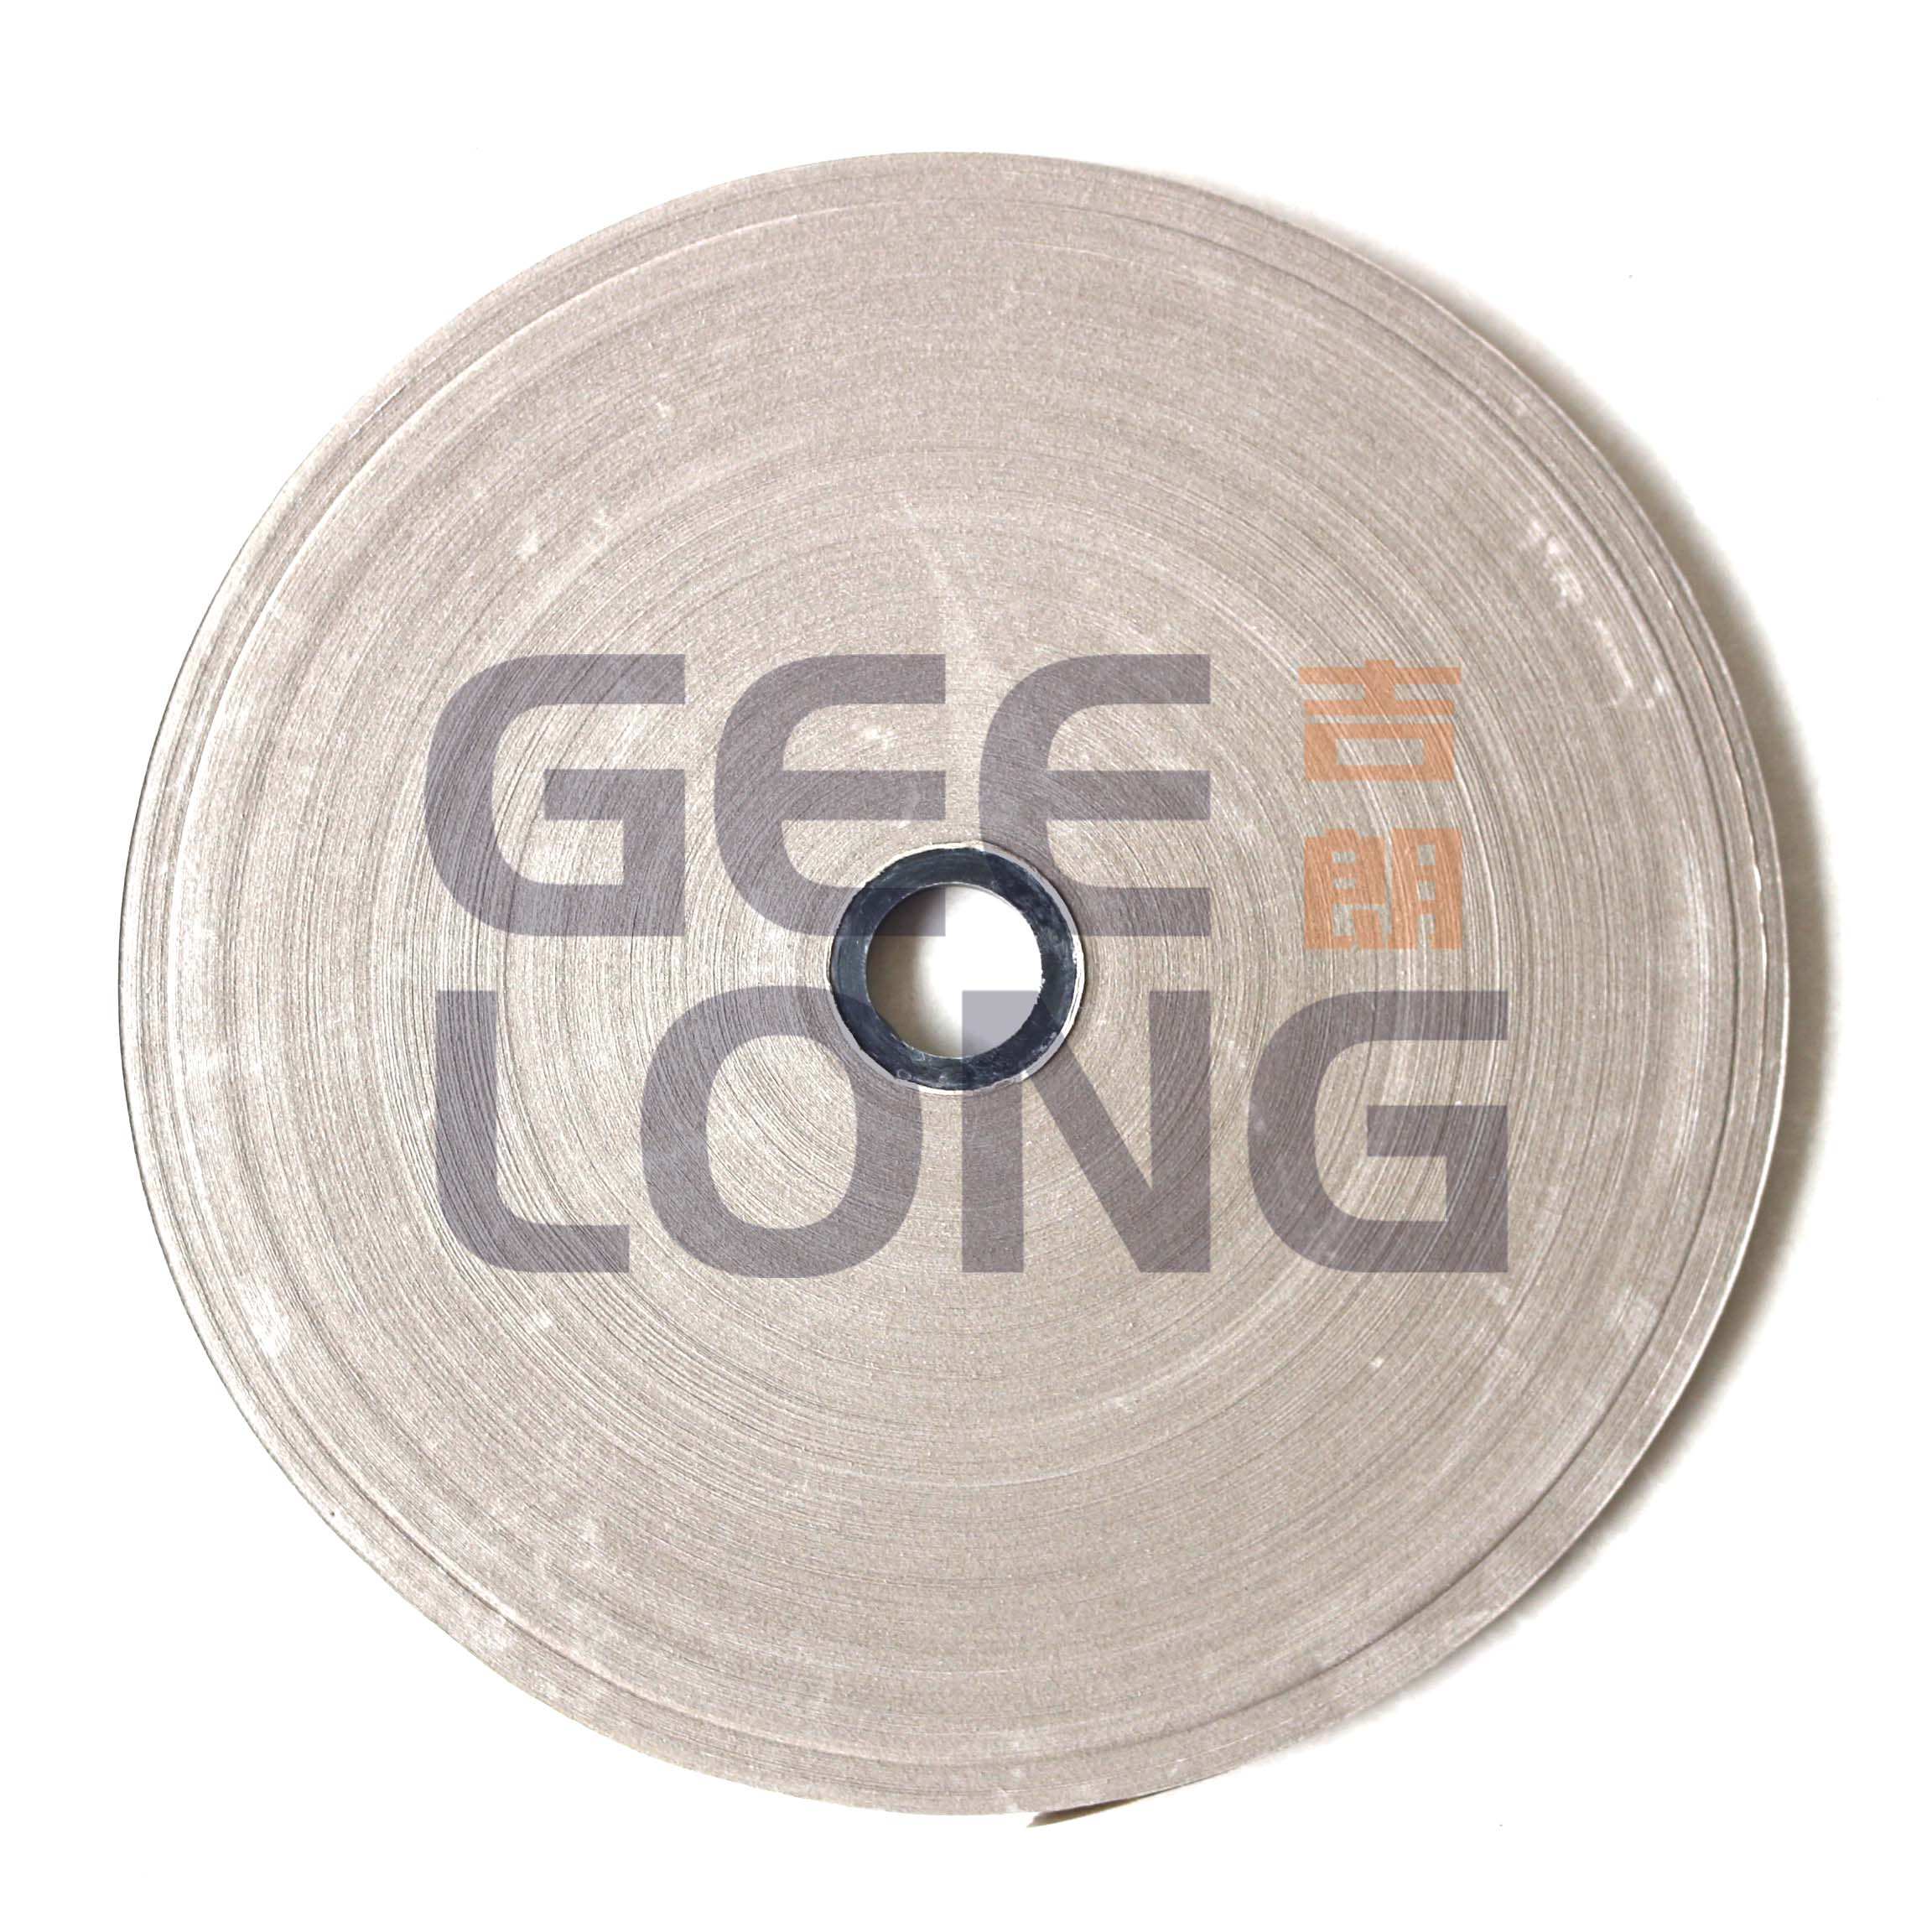 Veneer Tape, Reeling Tape for Face Veneer